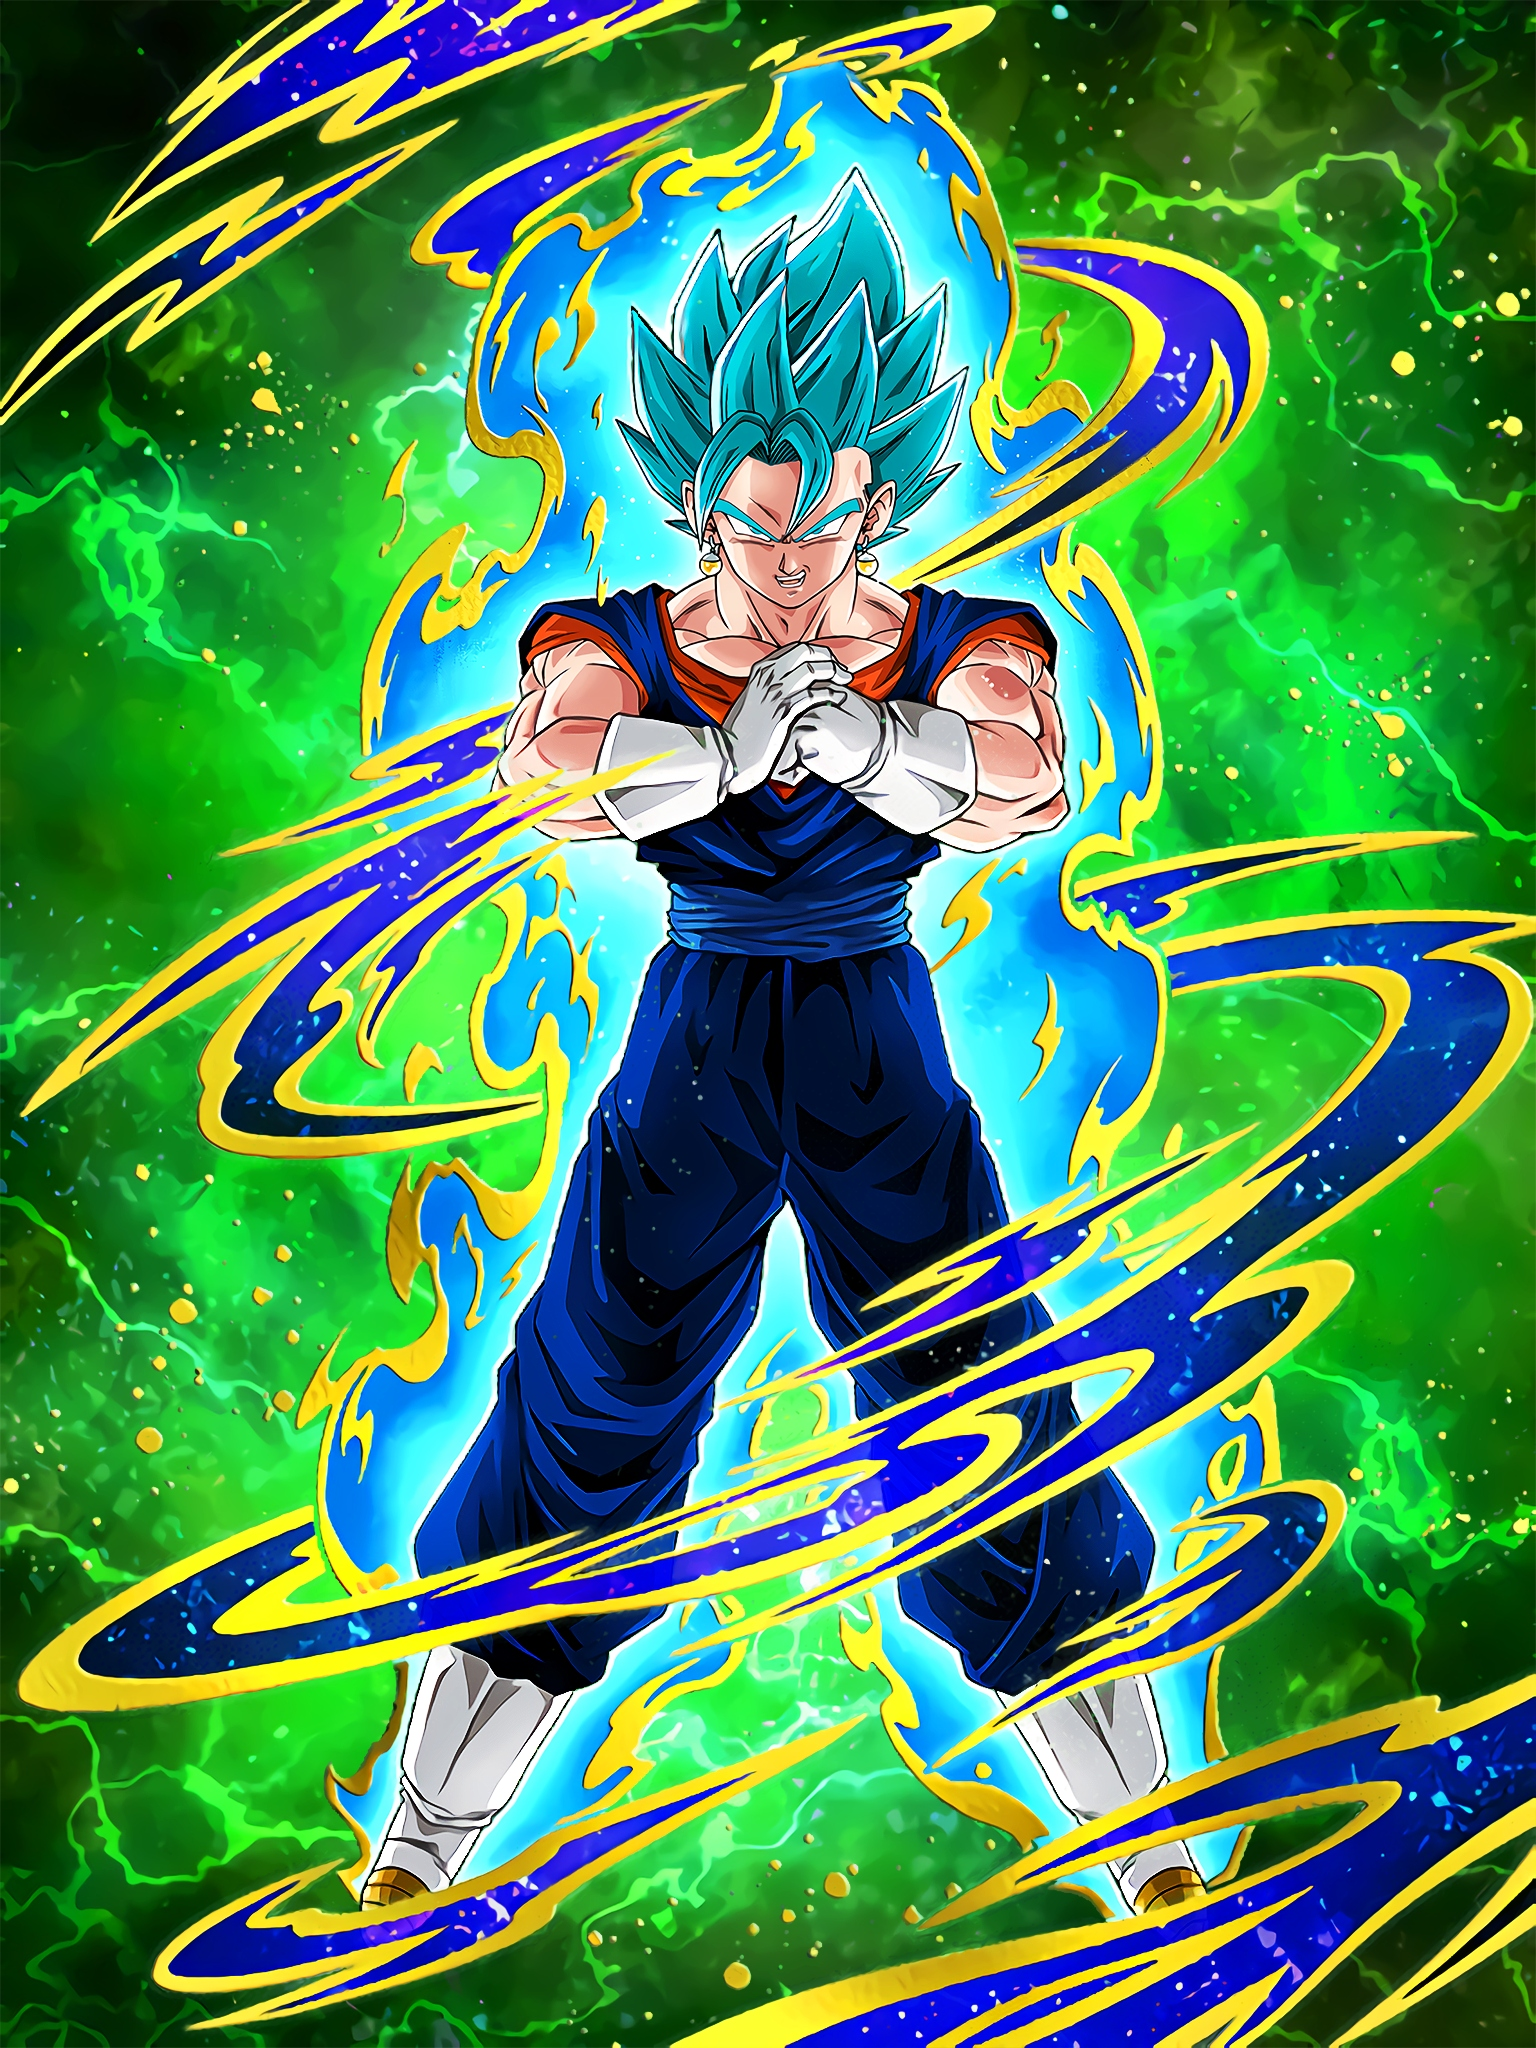 Azure Flash Super Saiyan God SS Vegito Art (Dragon Ball Z Dokkan Battle).jpg